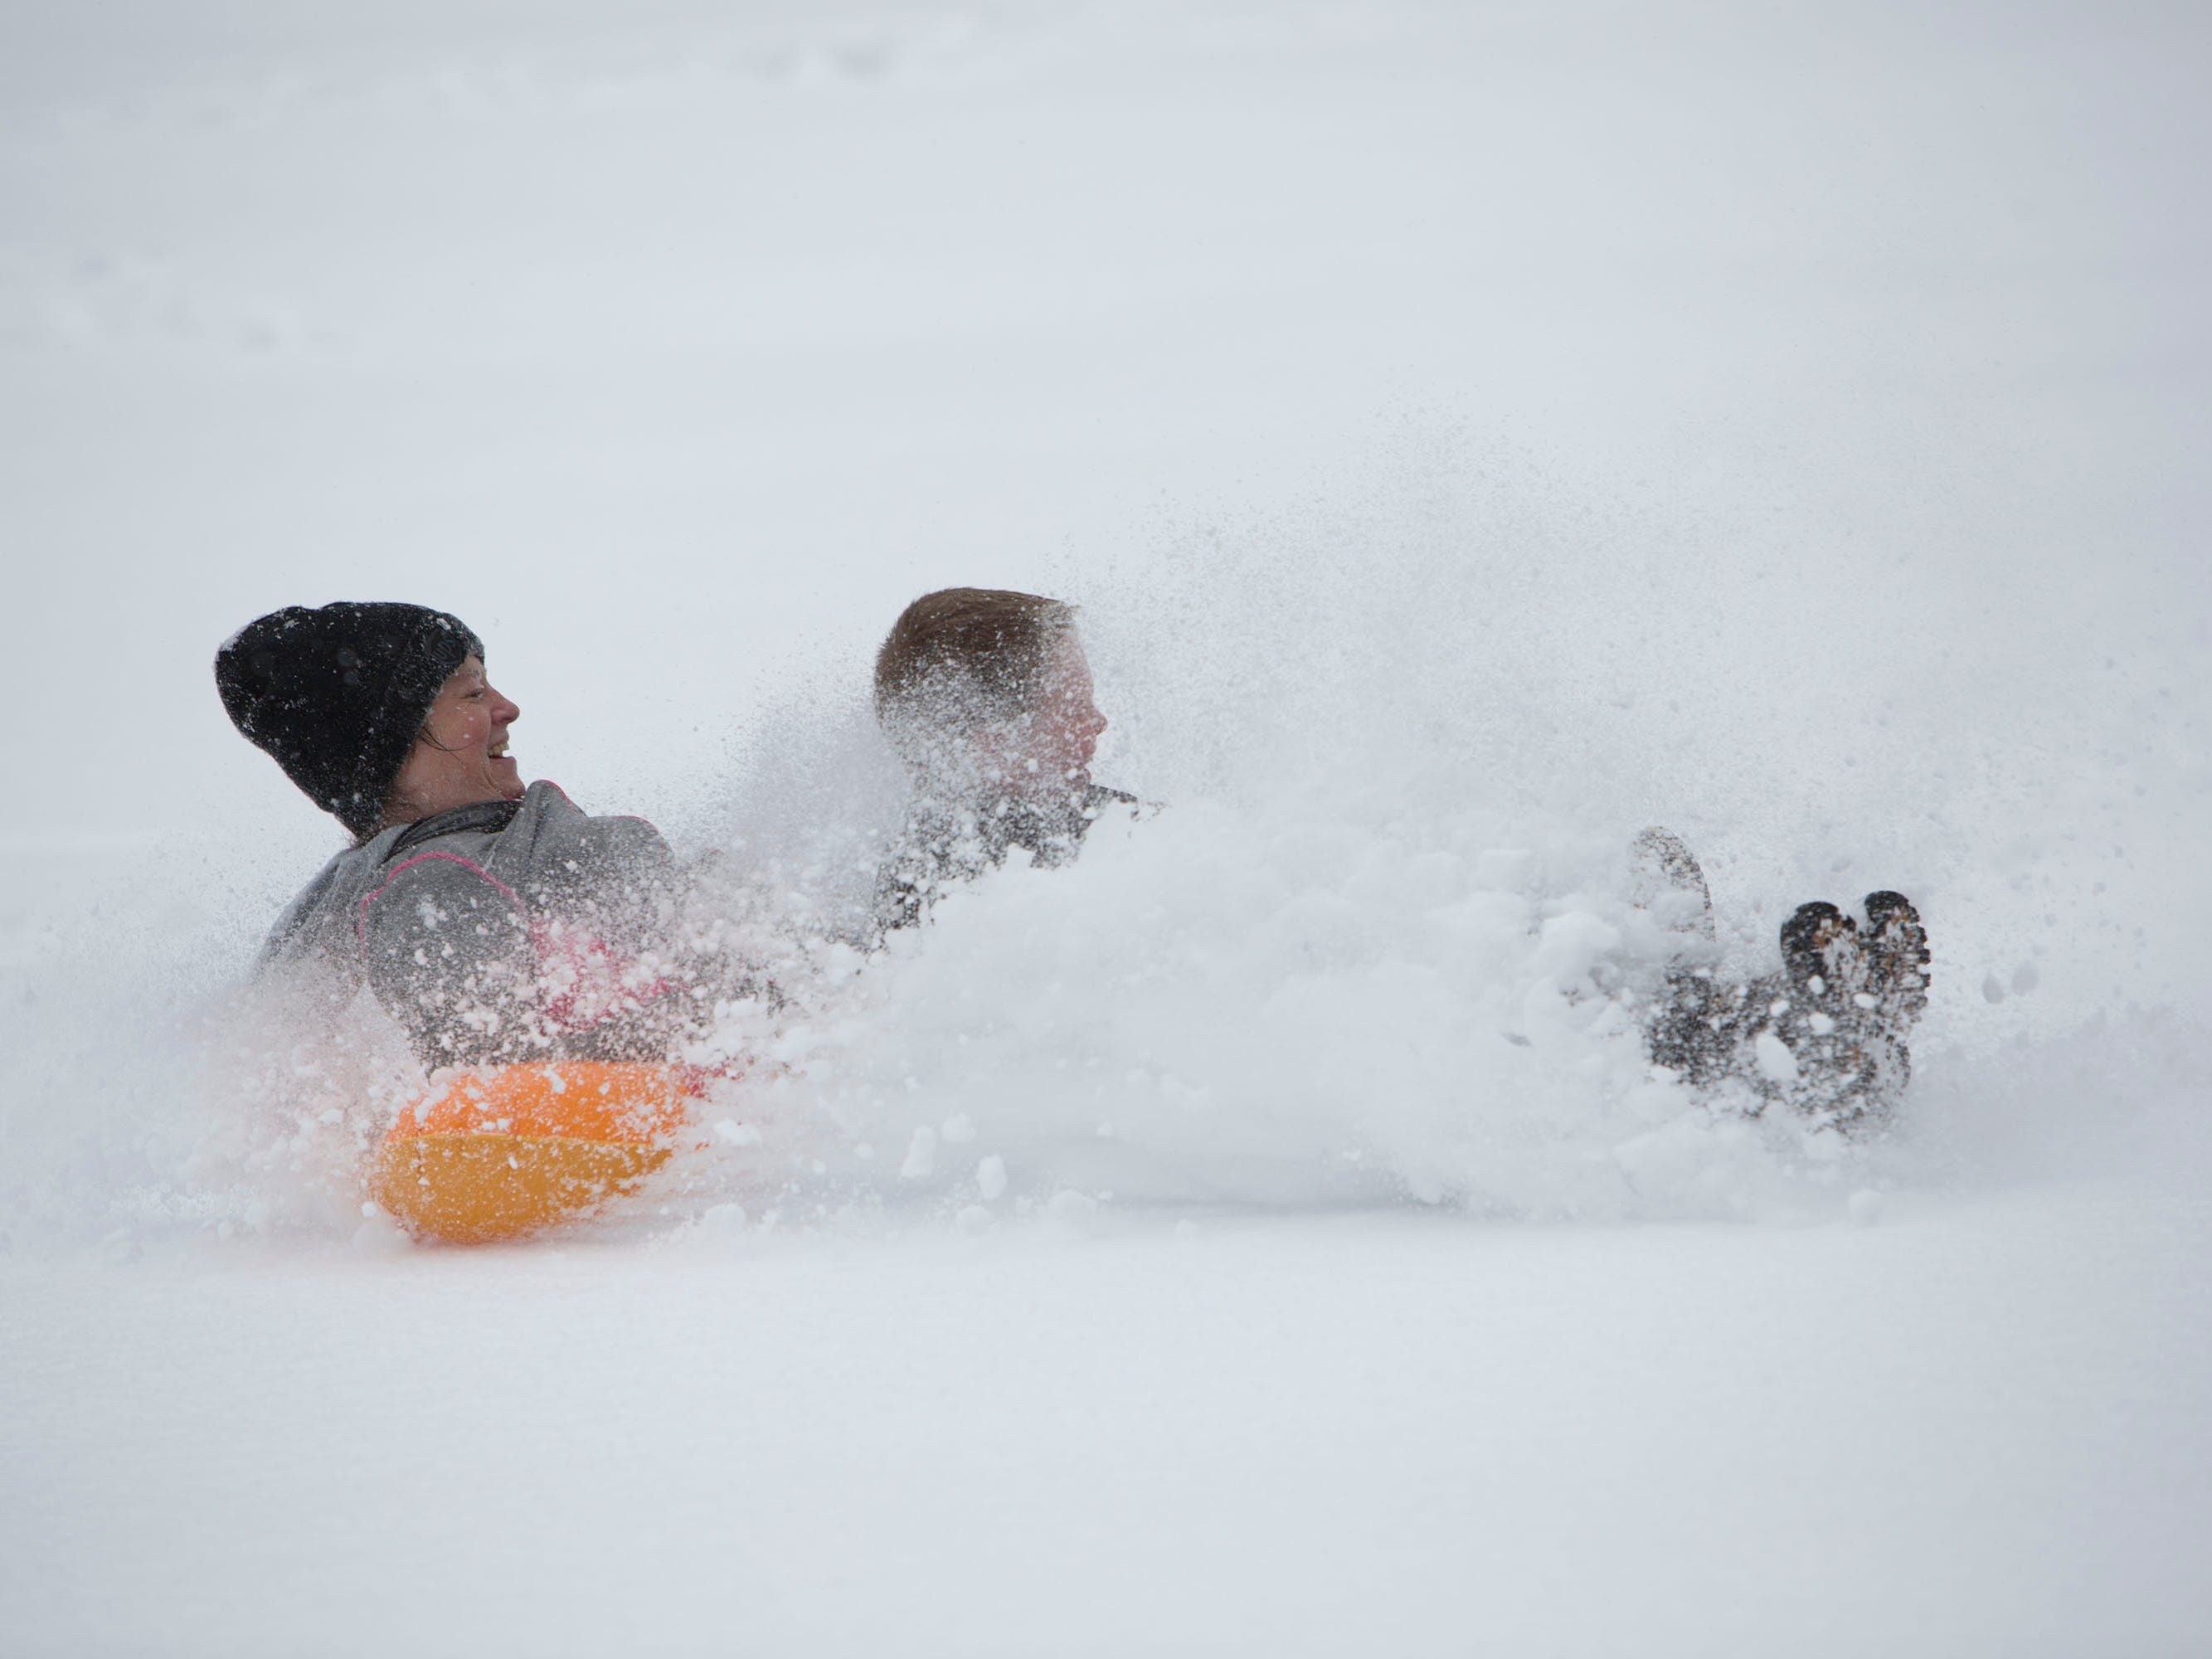 Tammy Adams, left, and her son Evan, 8,  play in the snow at Hidden Creek Country Club on Jan. 13, 2019 in Reston Va.